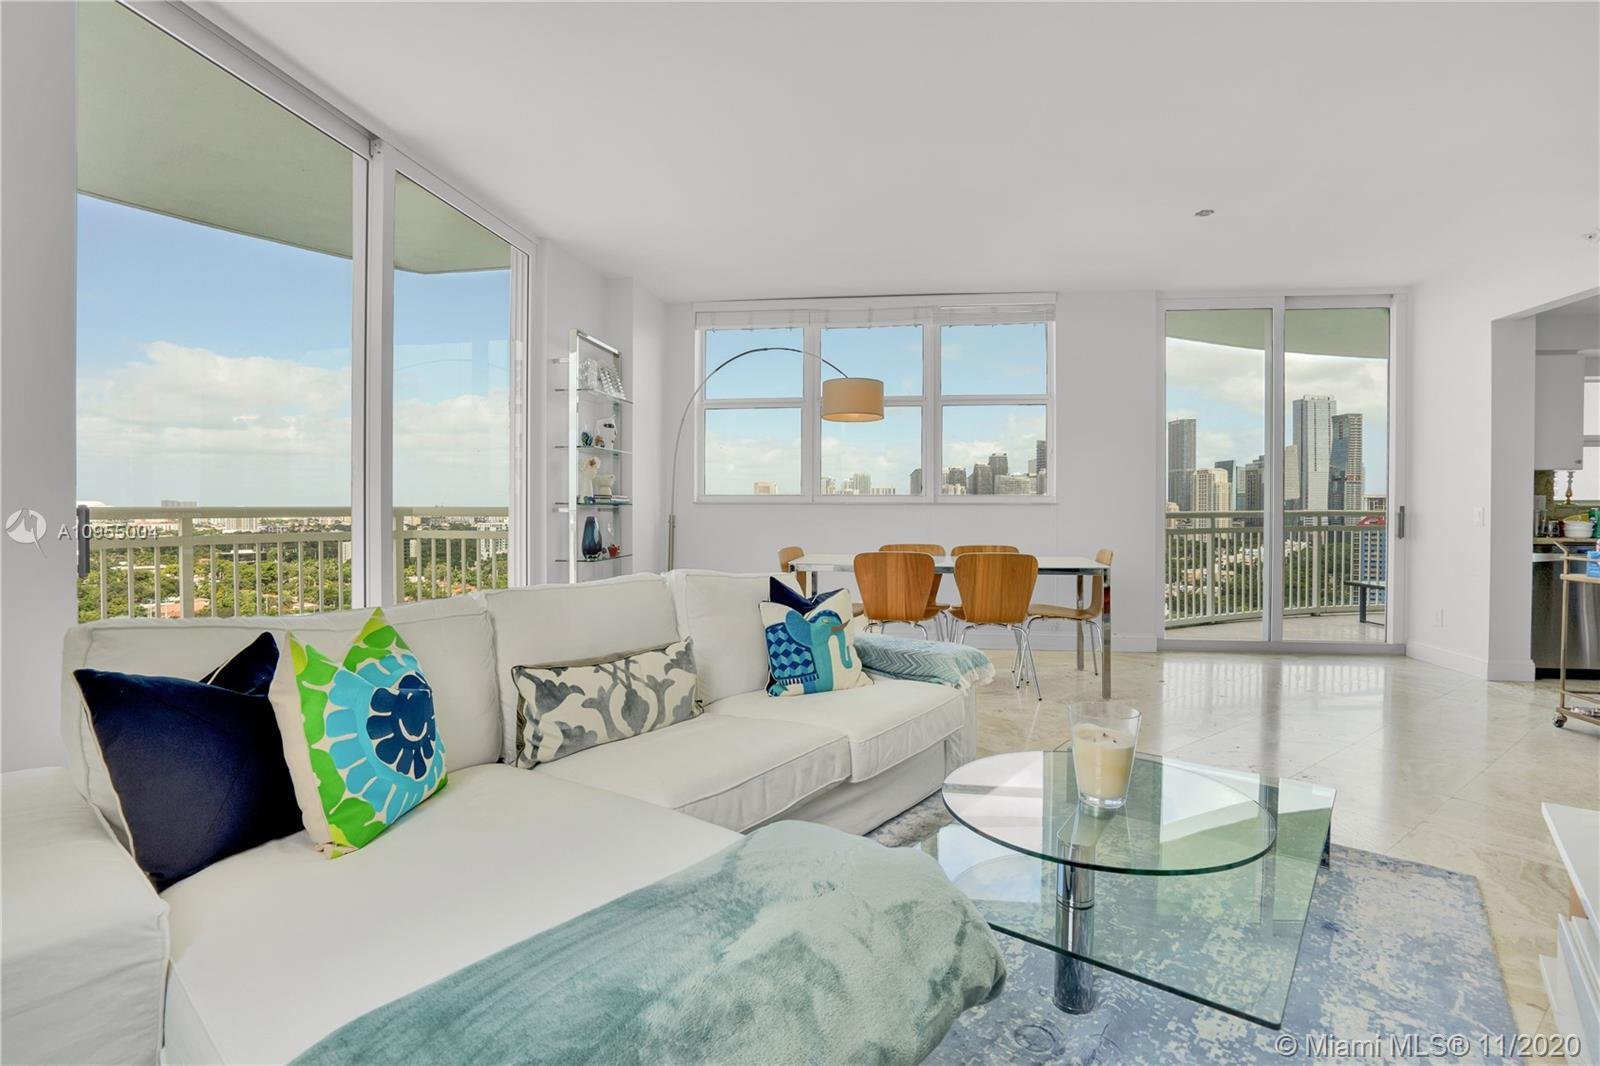 Serene setting on Brickell Ave. Superb location for easy access. Stunning views of Miami skyline, Br